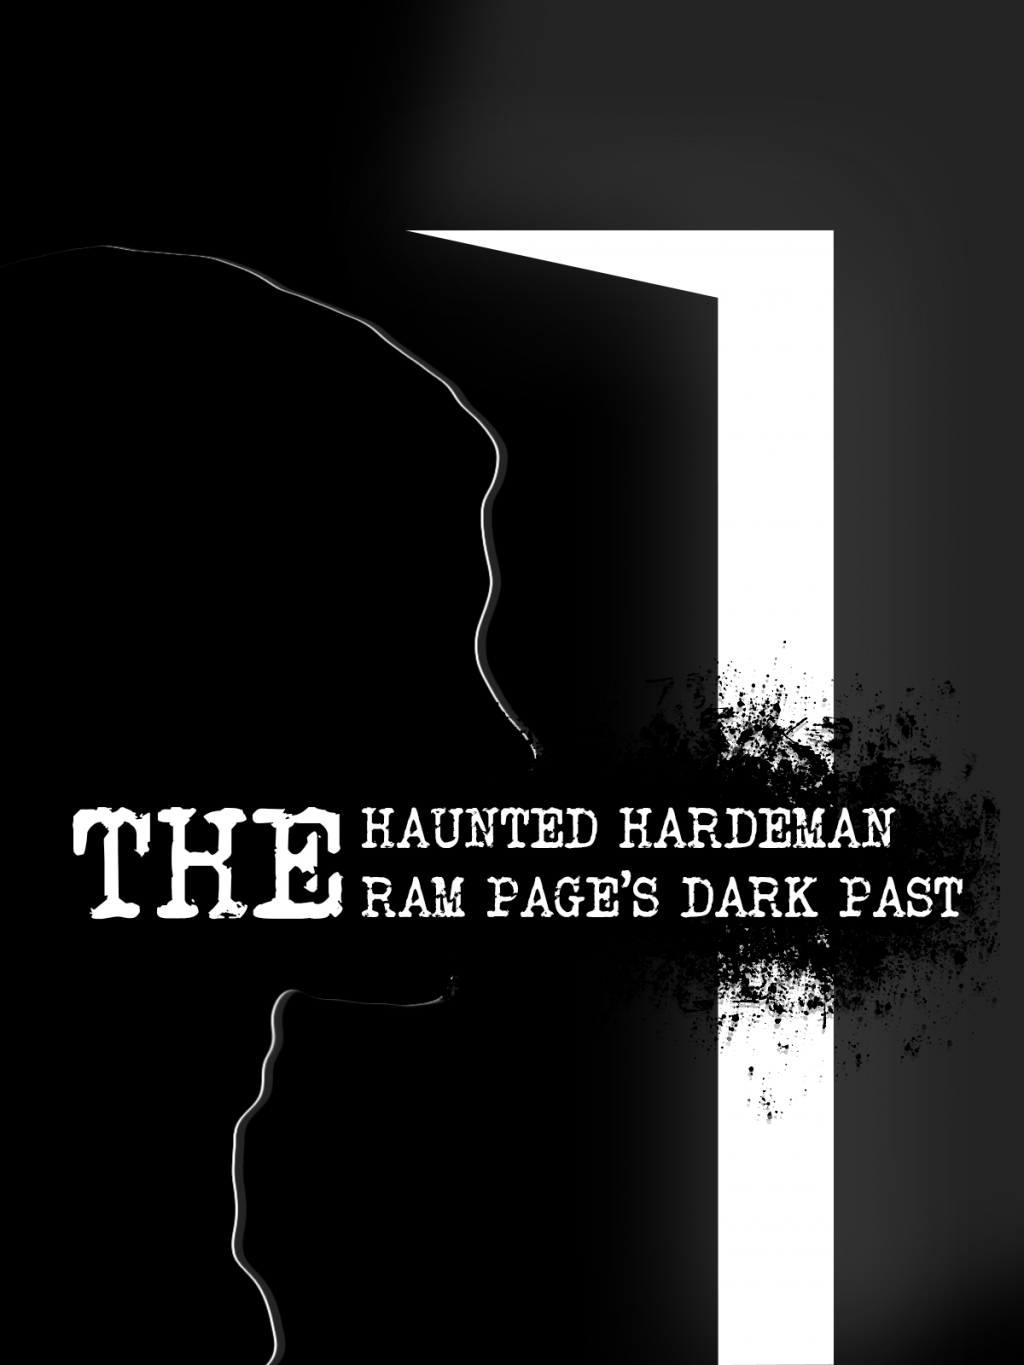 The Haunted Hardeman? The Ram Page's dark past